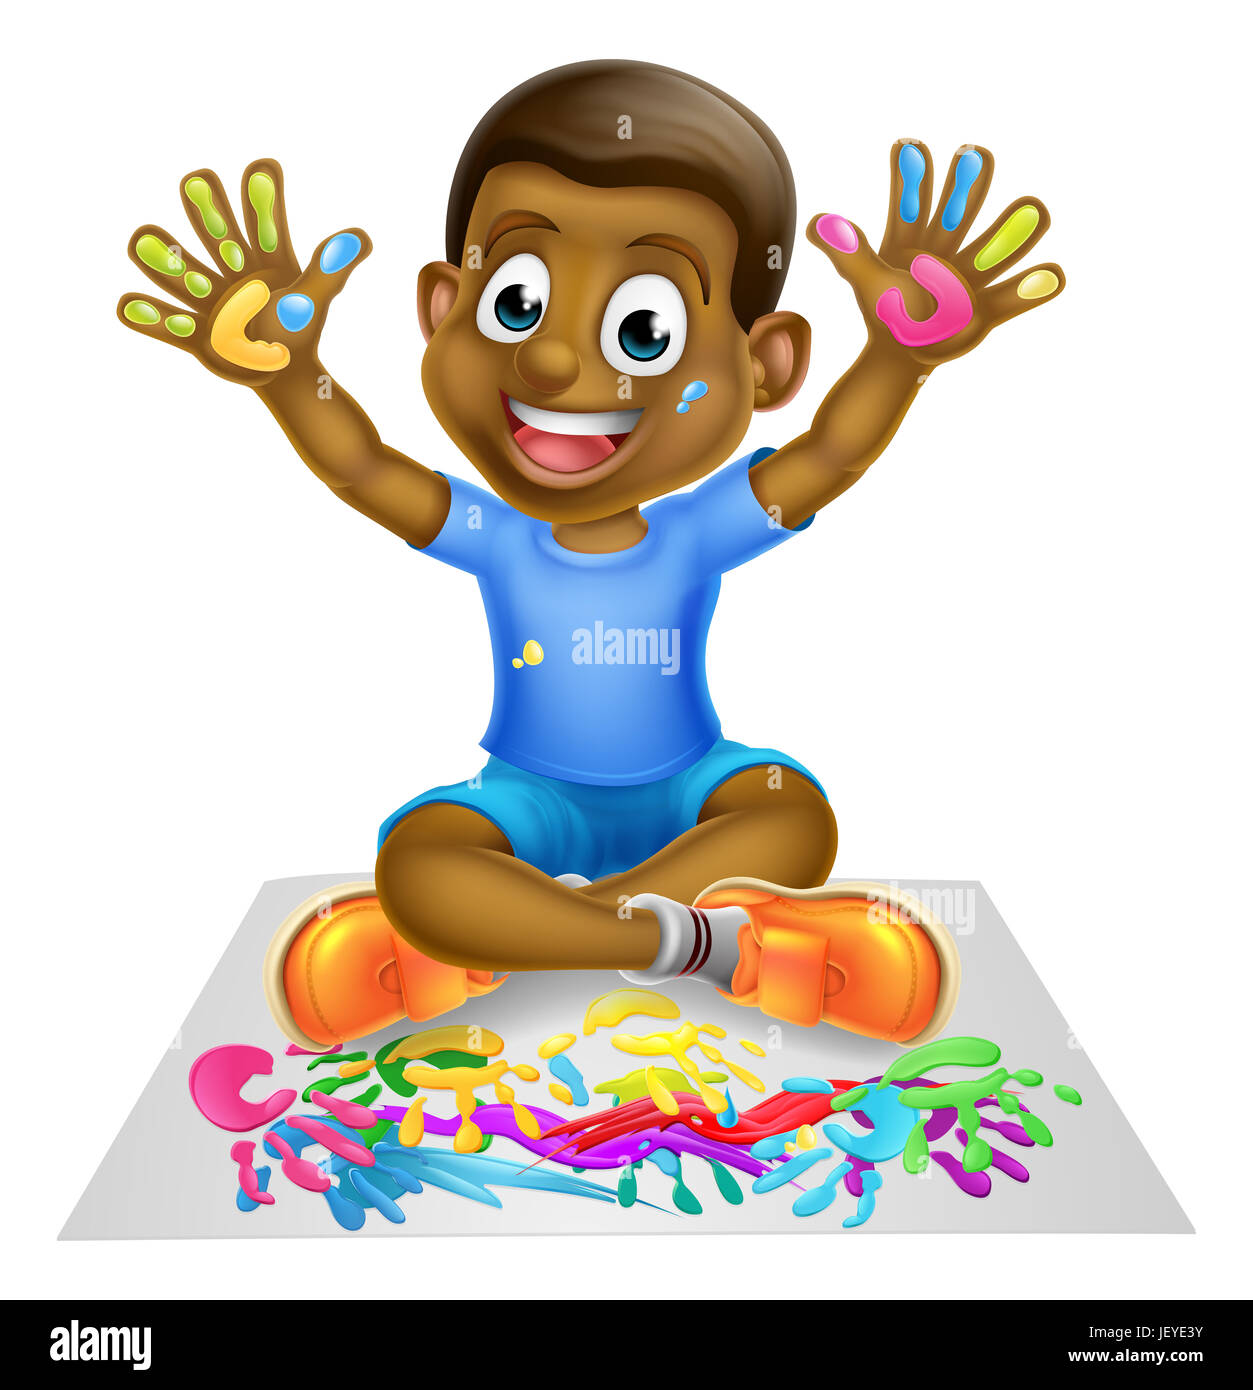 A happy cartoon little boy enjoying being creative having messy play with paint - Stock Image